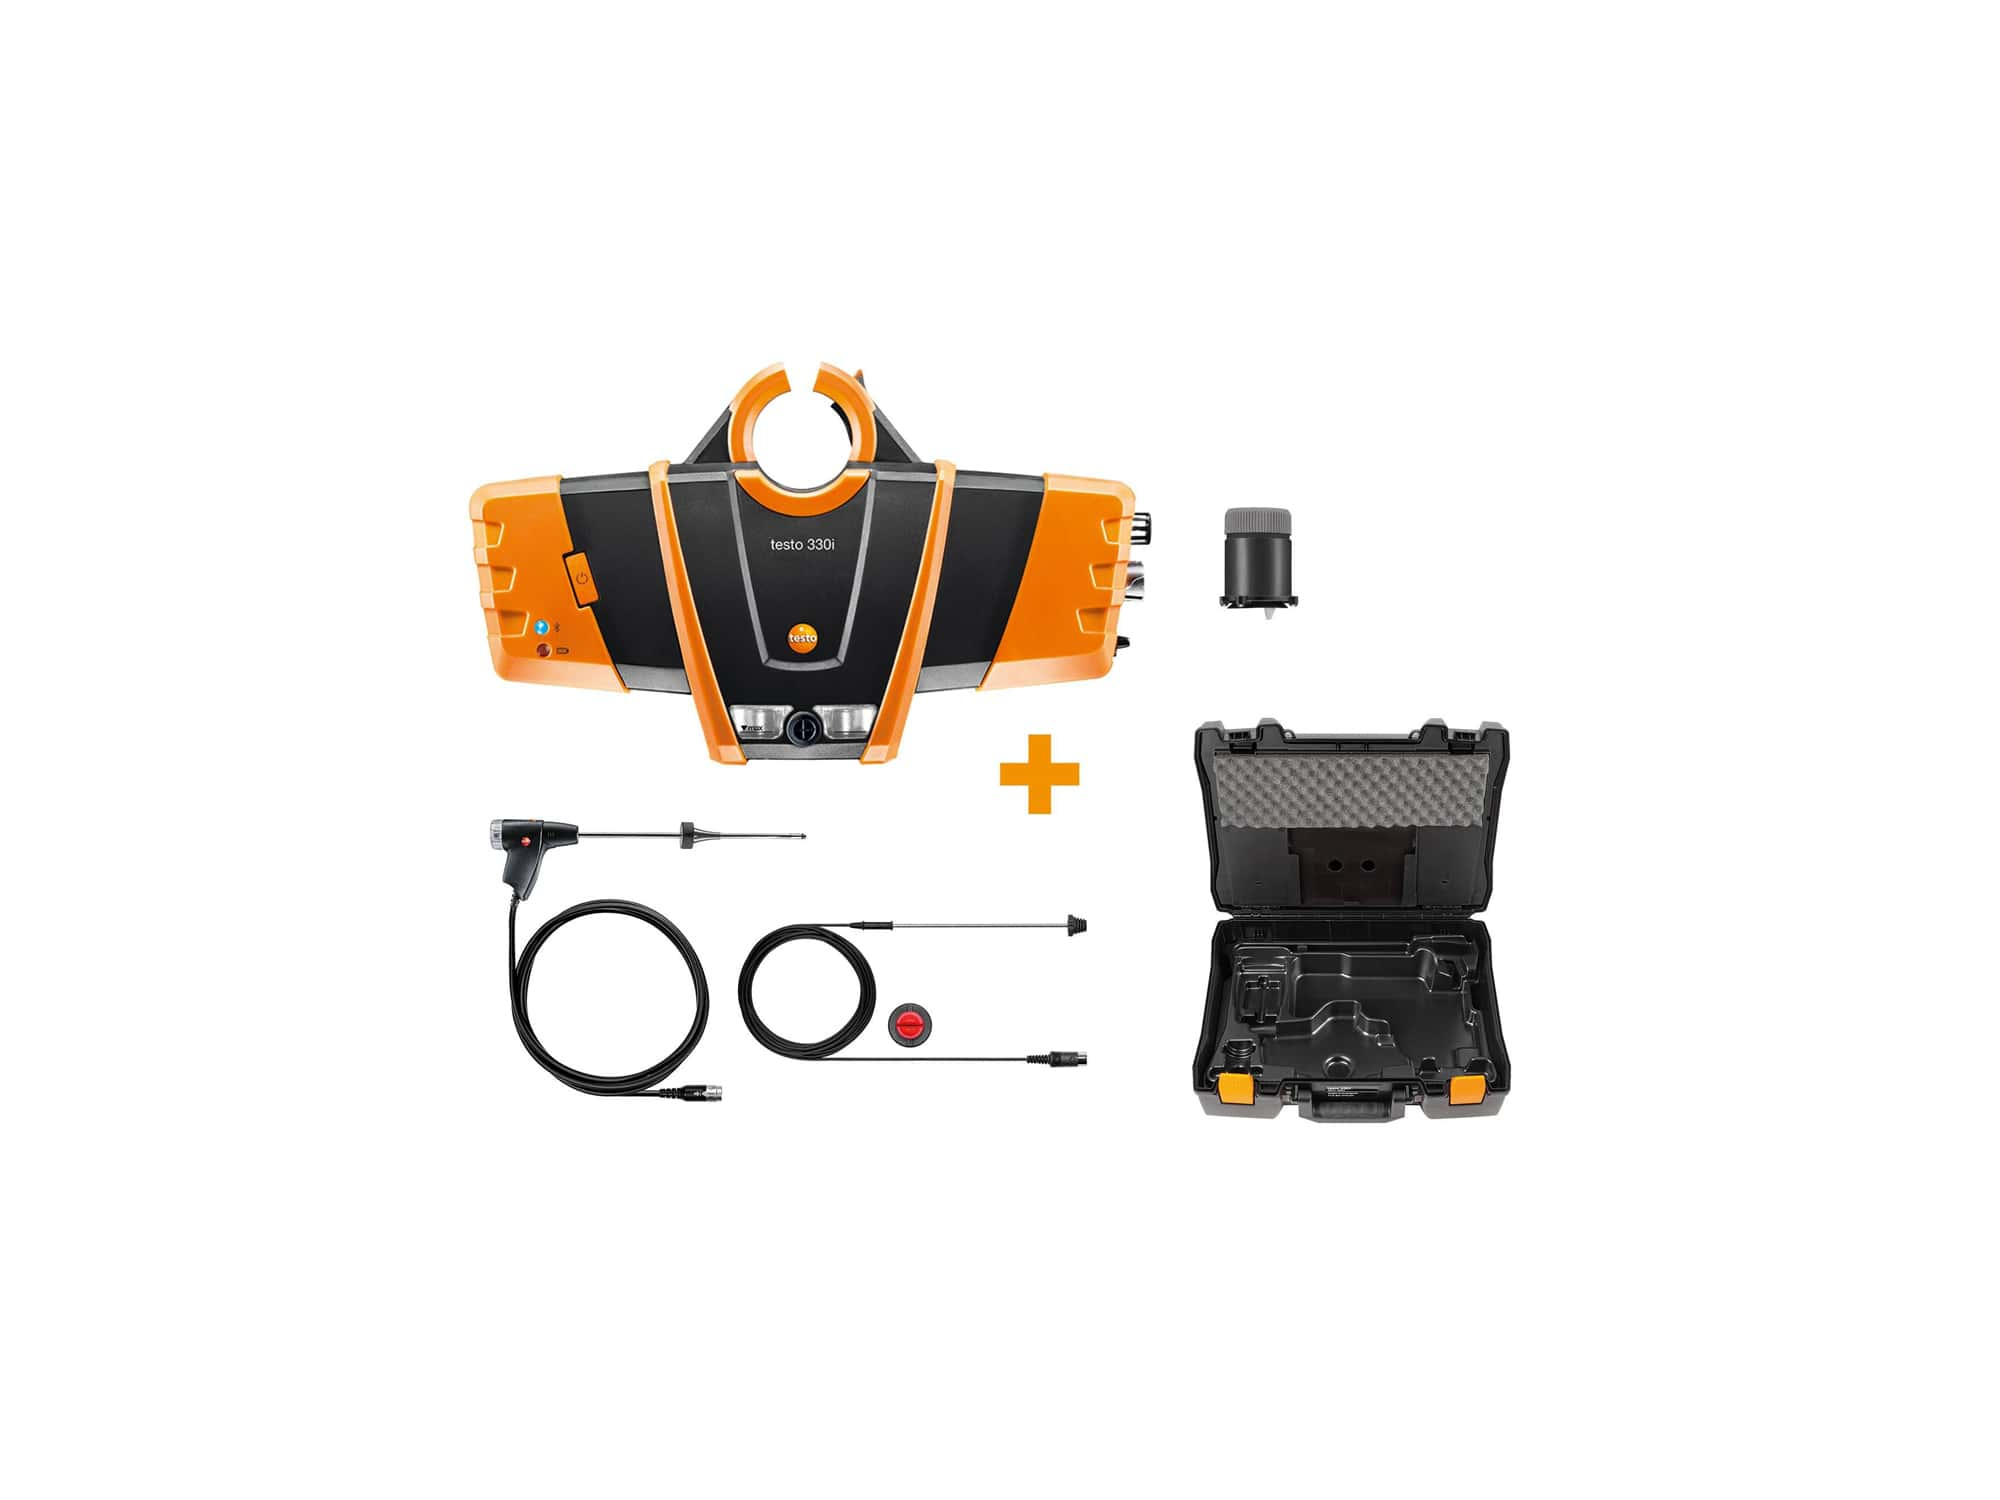 testo 330i heating engineering set - Flue gas measurement on gas, oil and solid fuel systems